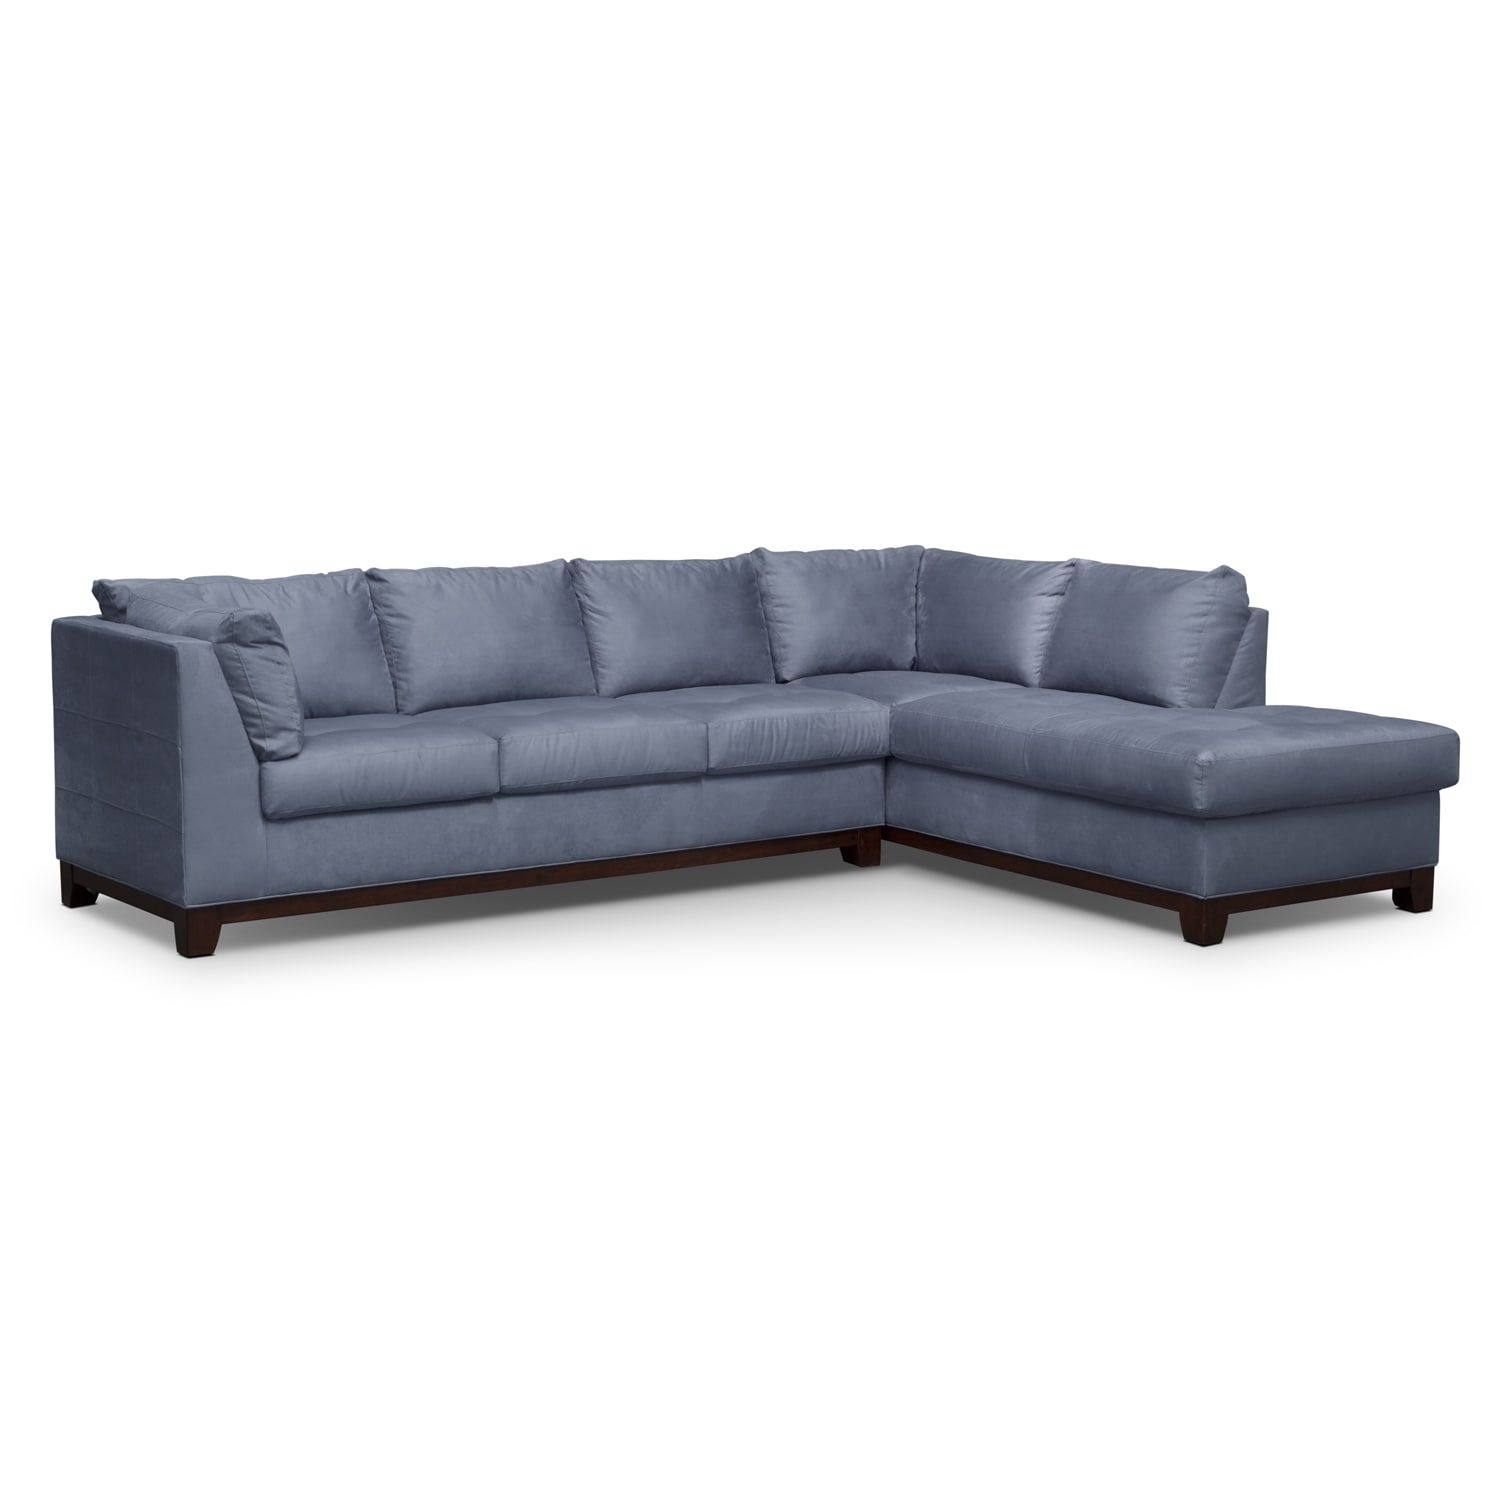 Soho 2 piece sectional with right facing chaise steel for Couch with 2 chaises